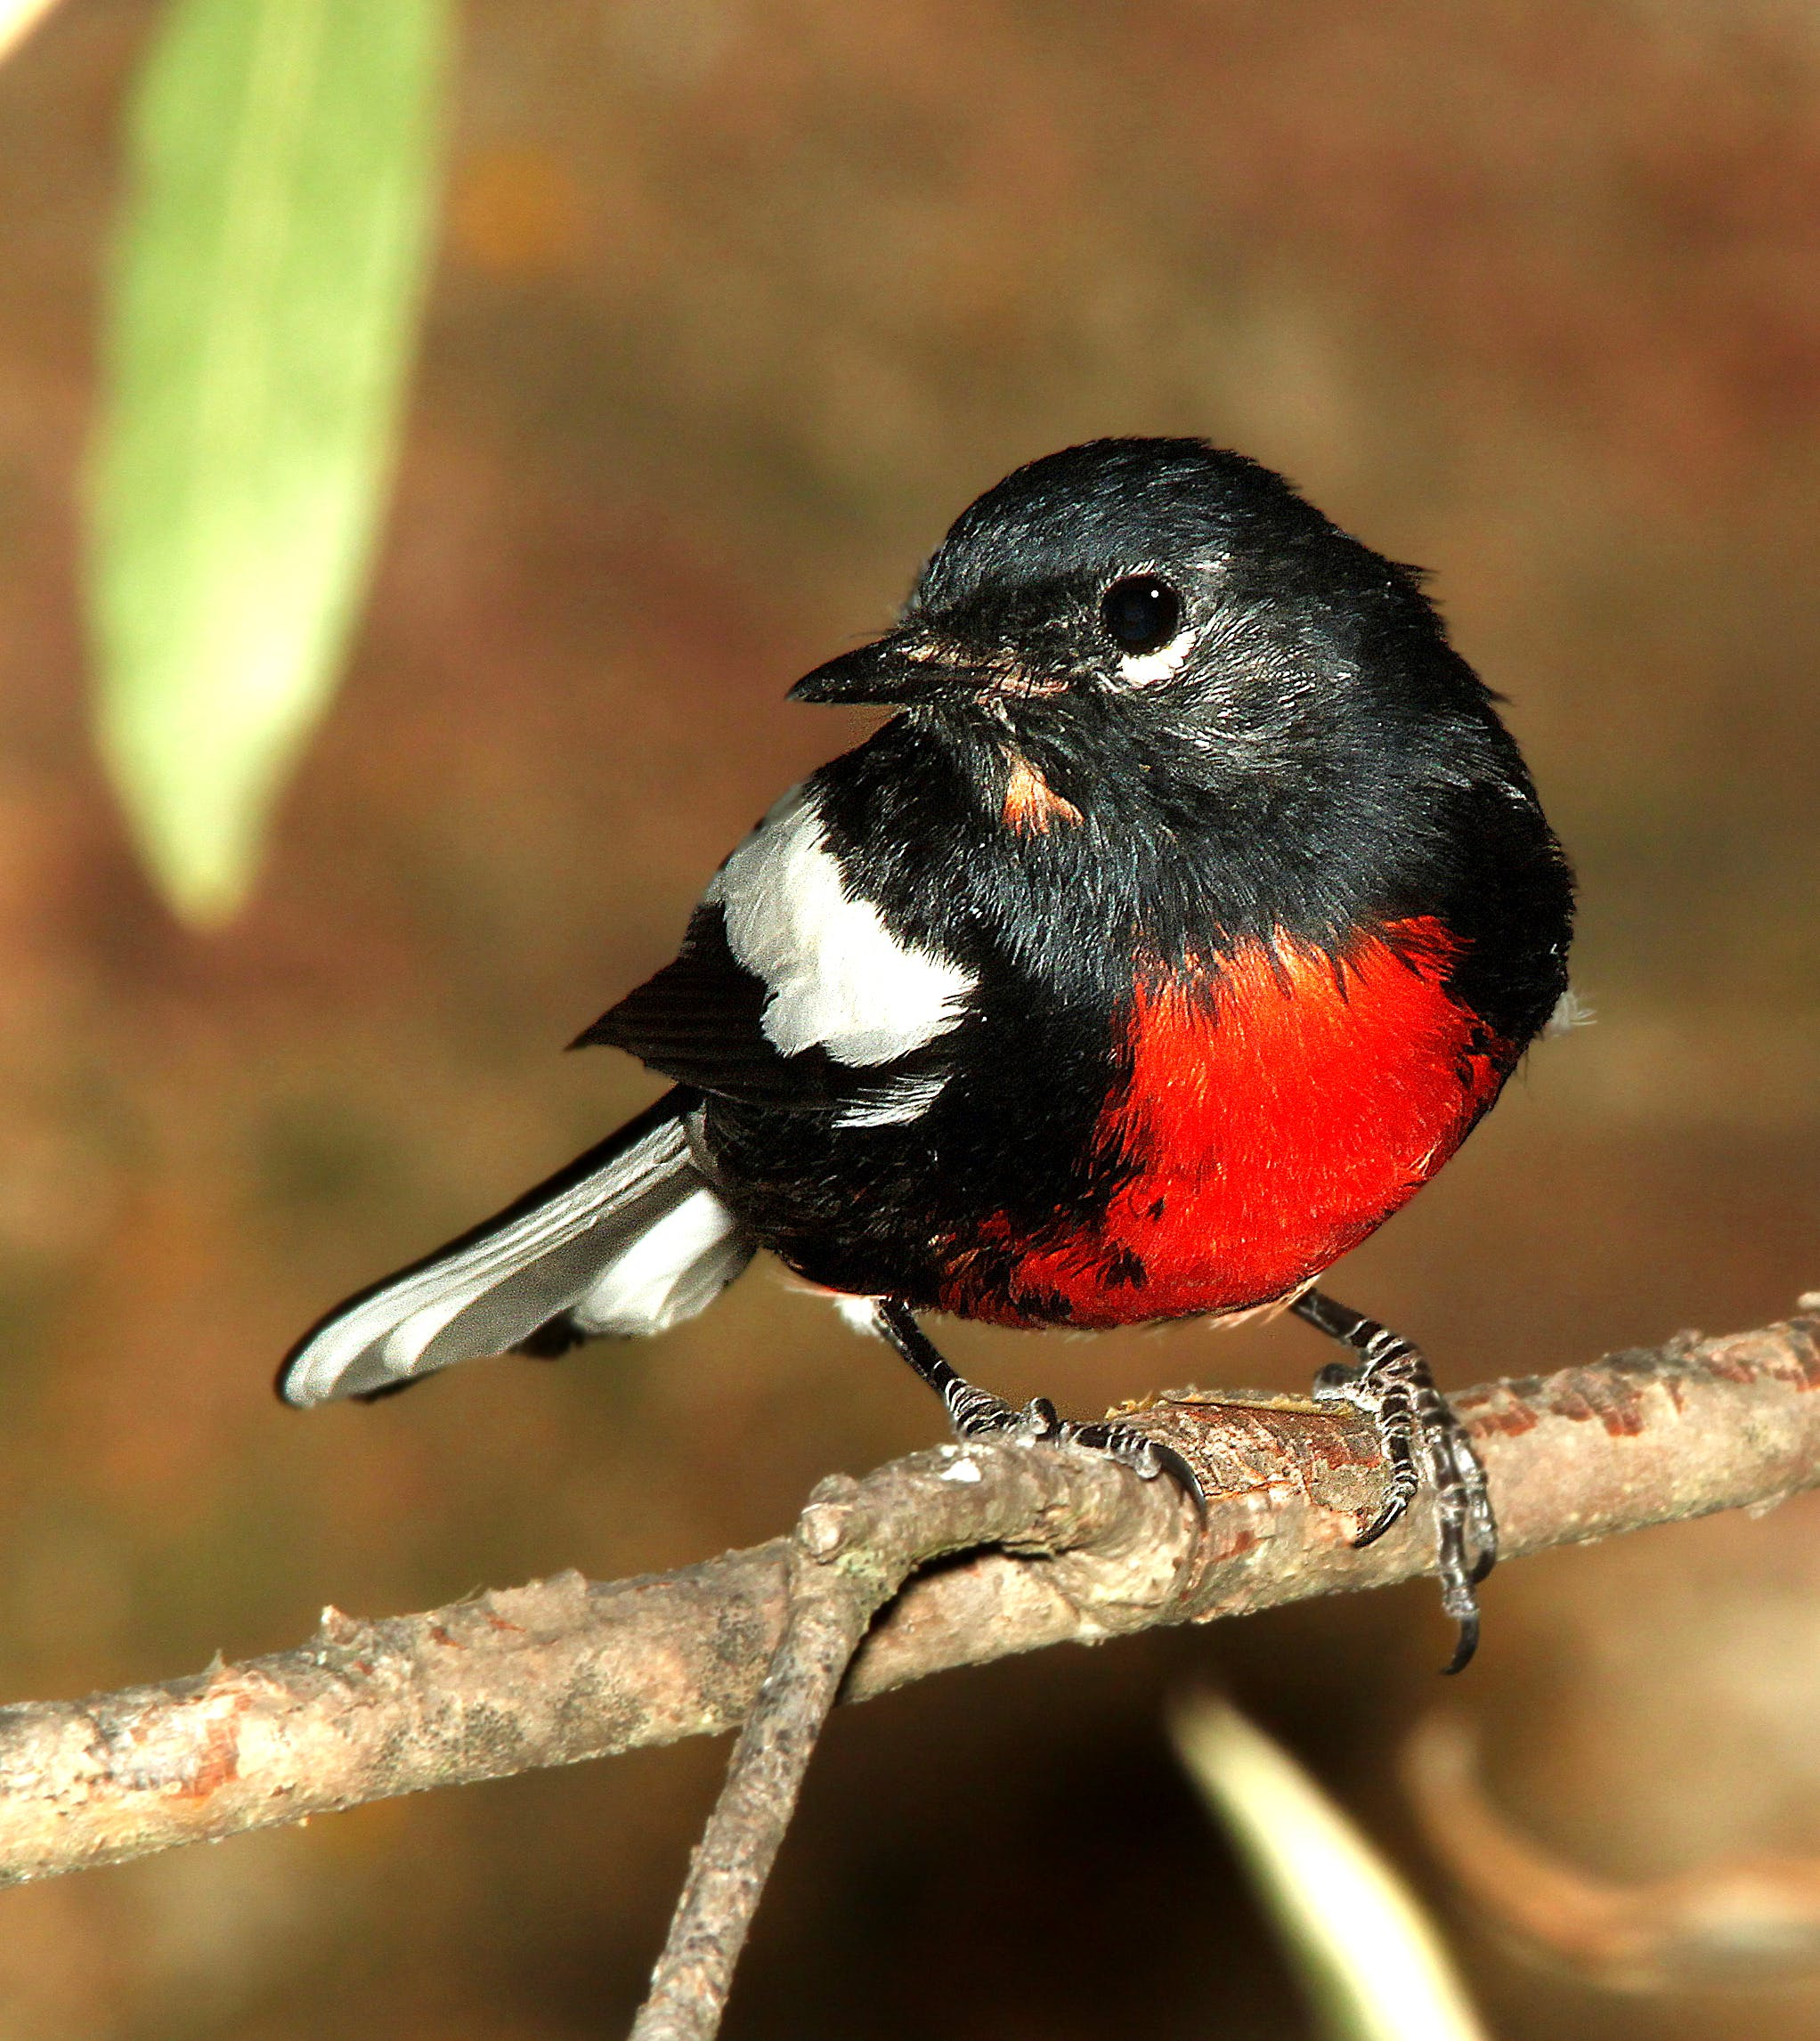 Black White Red Chested Bird Perched on Stem Closeup Photography during Daytime